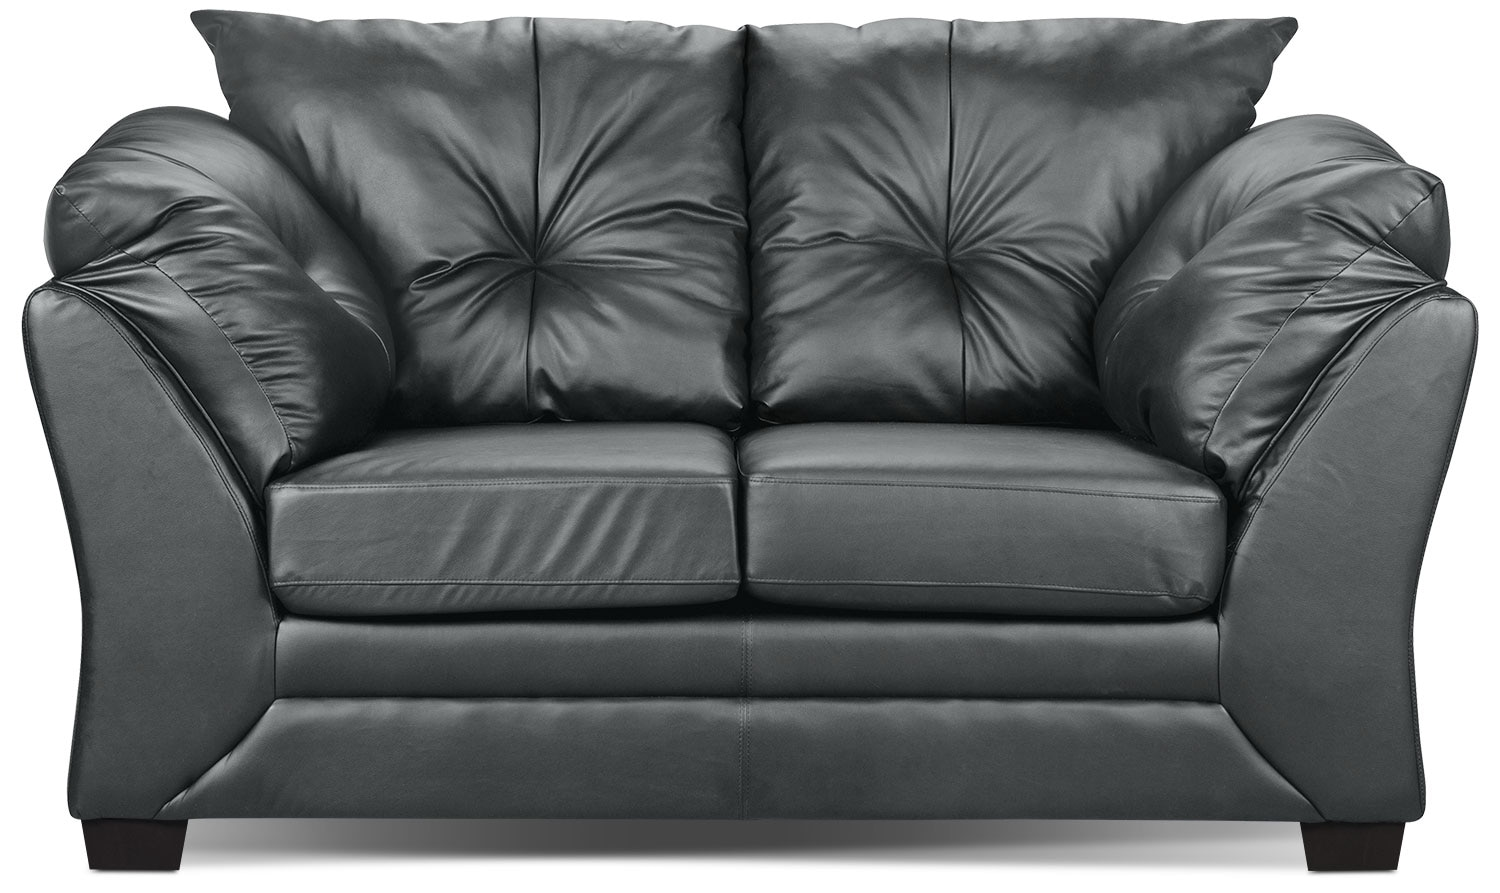 Living Room Furniture - Max Faux Leather Loveseat - Grey